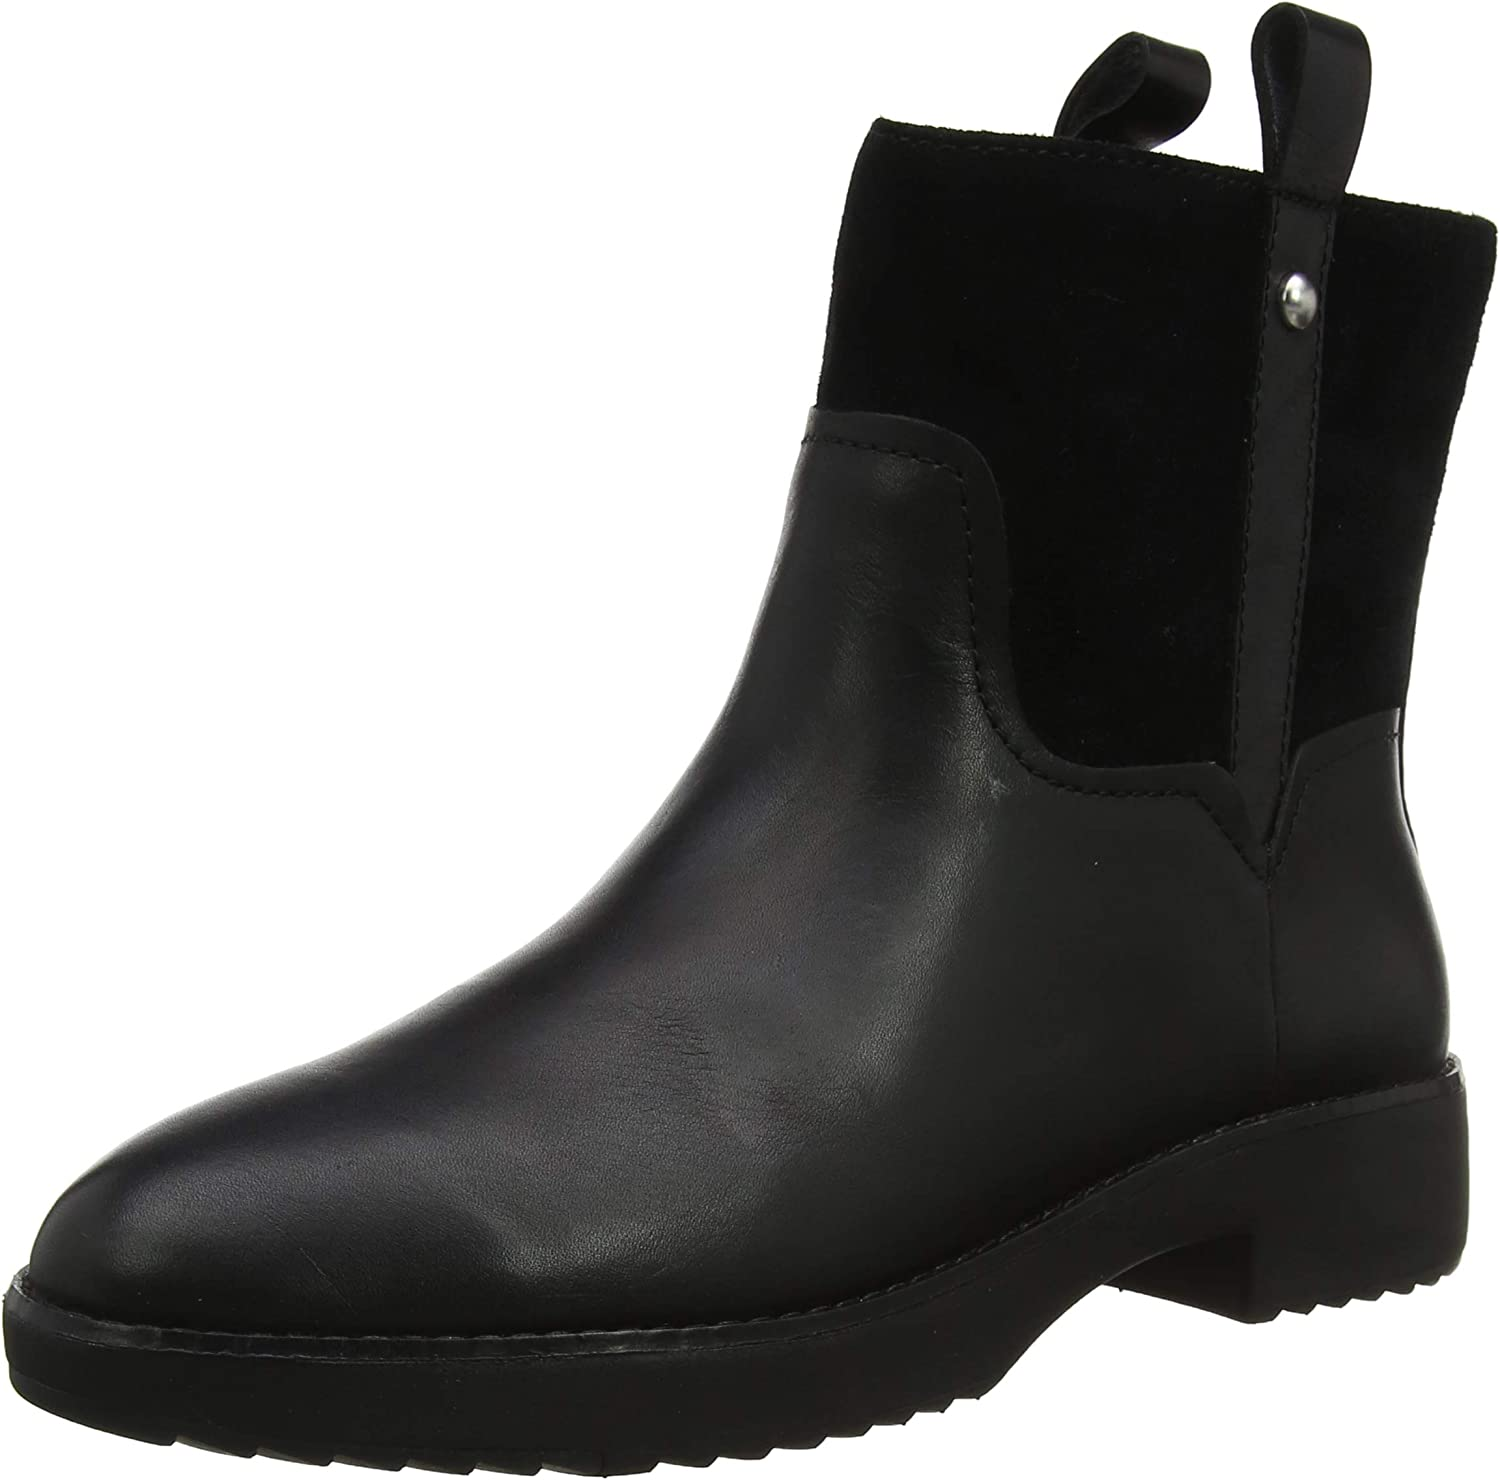 fitflop ankle boots sale